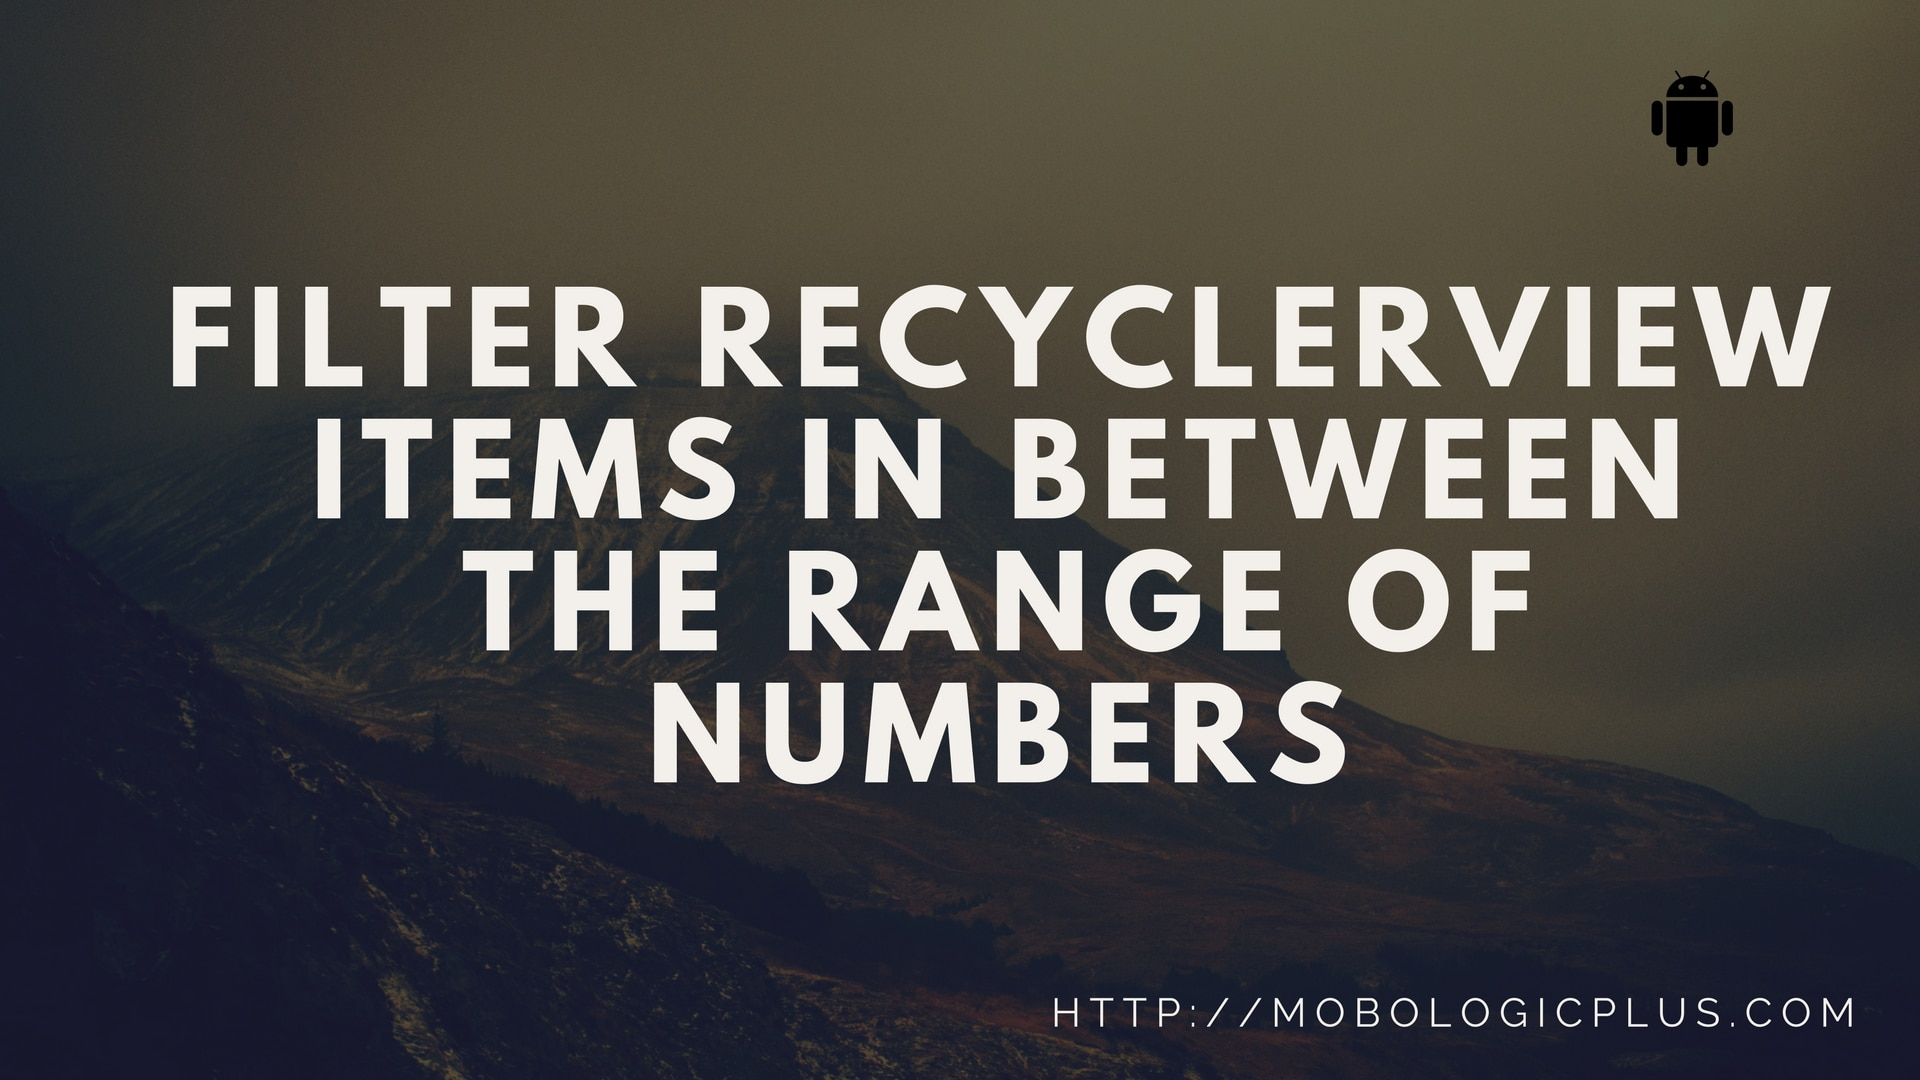 Filter recyclerview items in between the range of numbers in